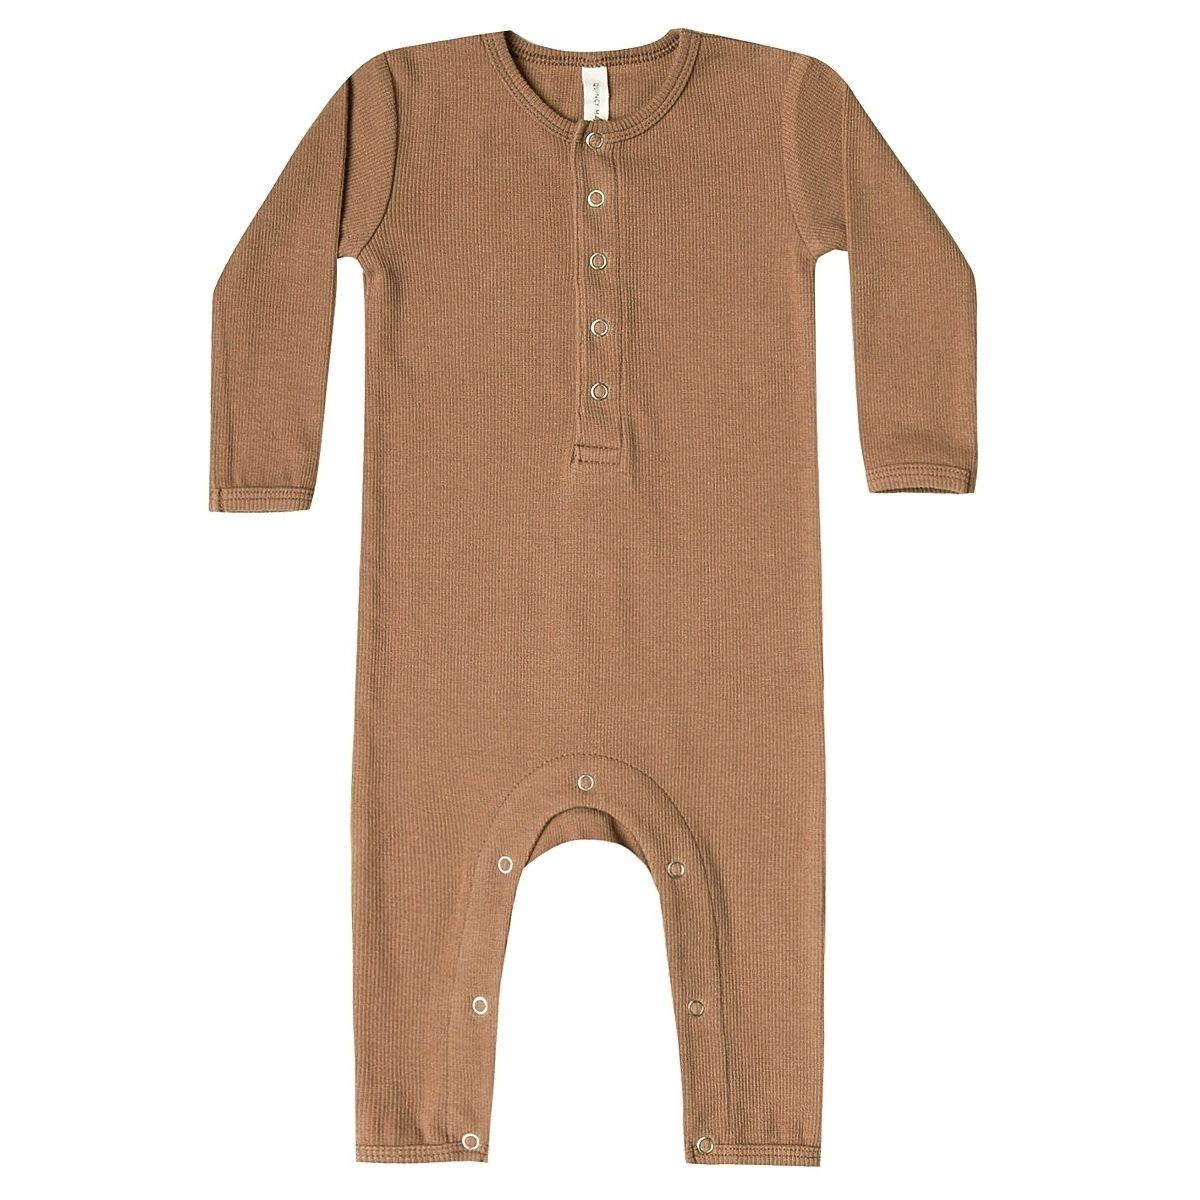 Ribbed Baby Romper brown - Quincy Mae